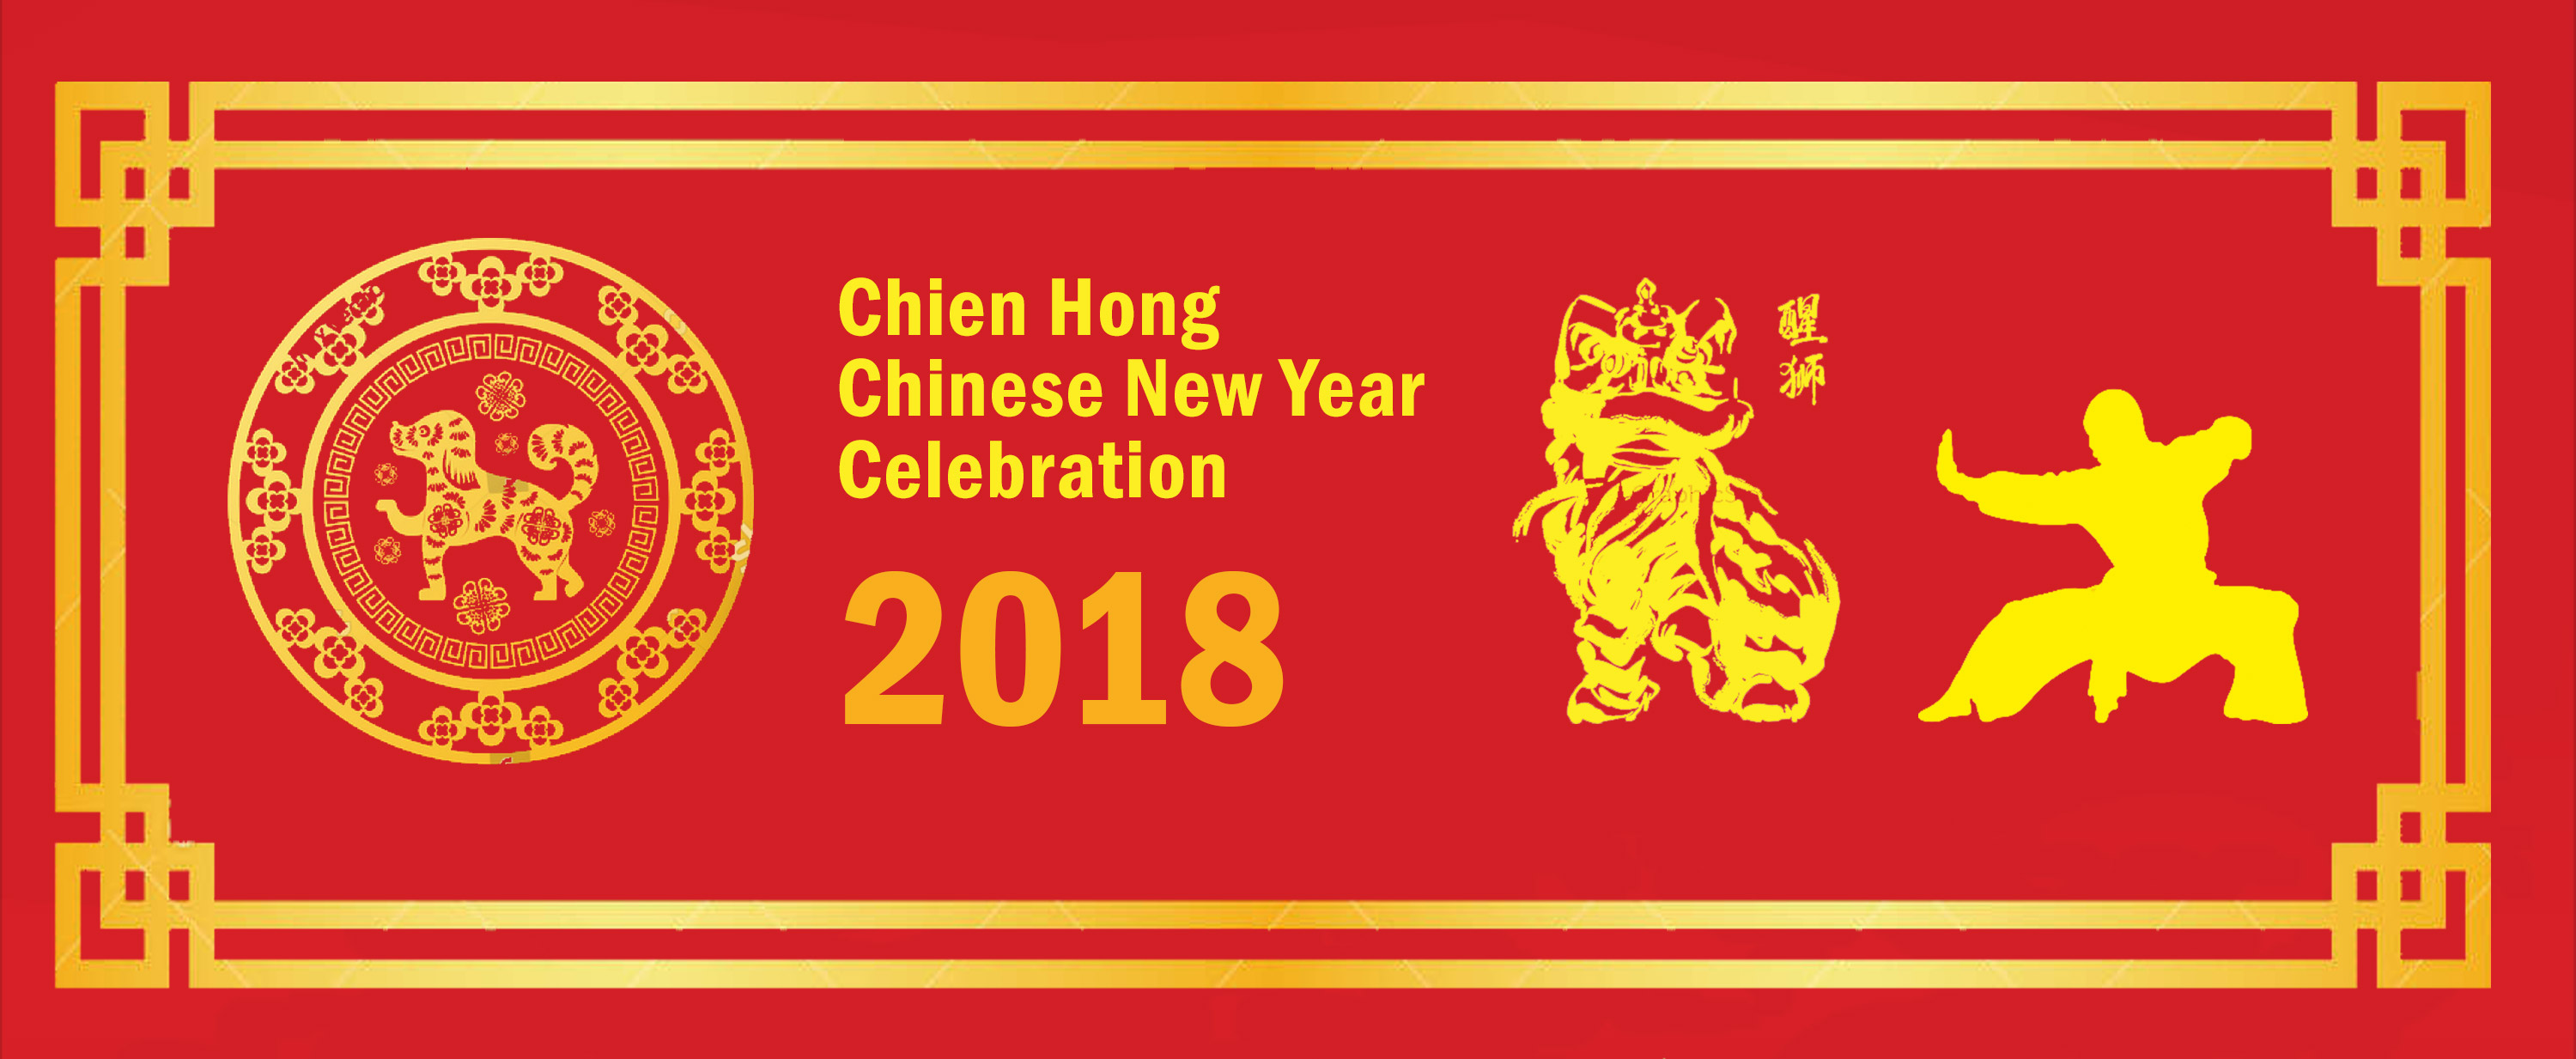 the chien hong school of kung fu will be performing lion dance dragon dance and kung fu at various businesses around the chinese community primarily at